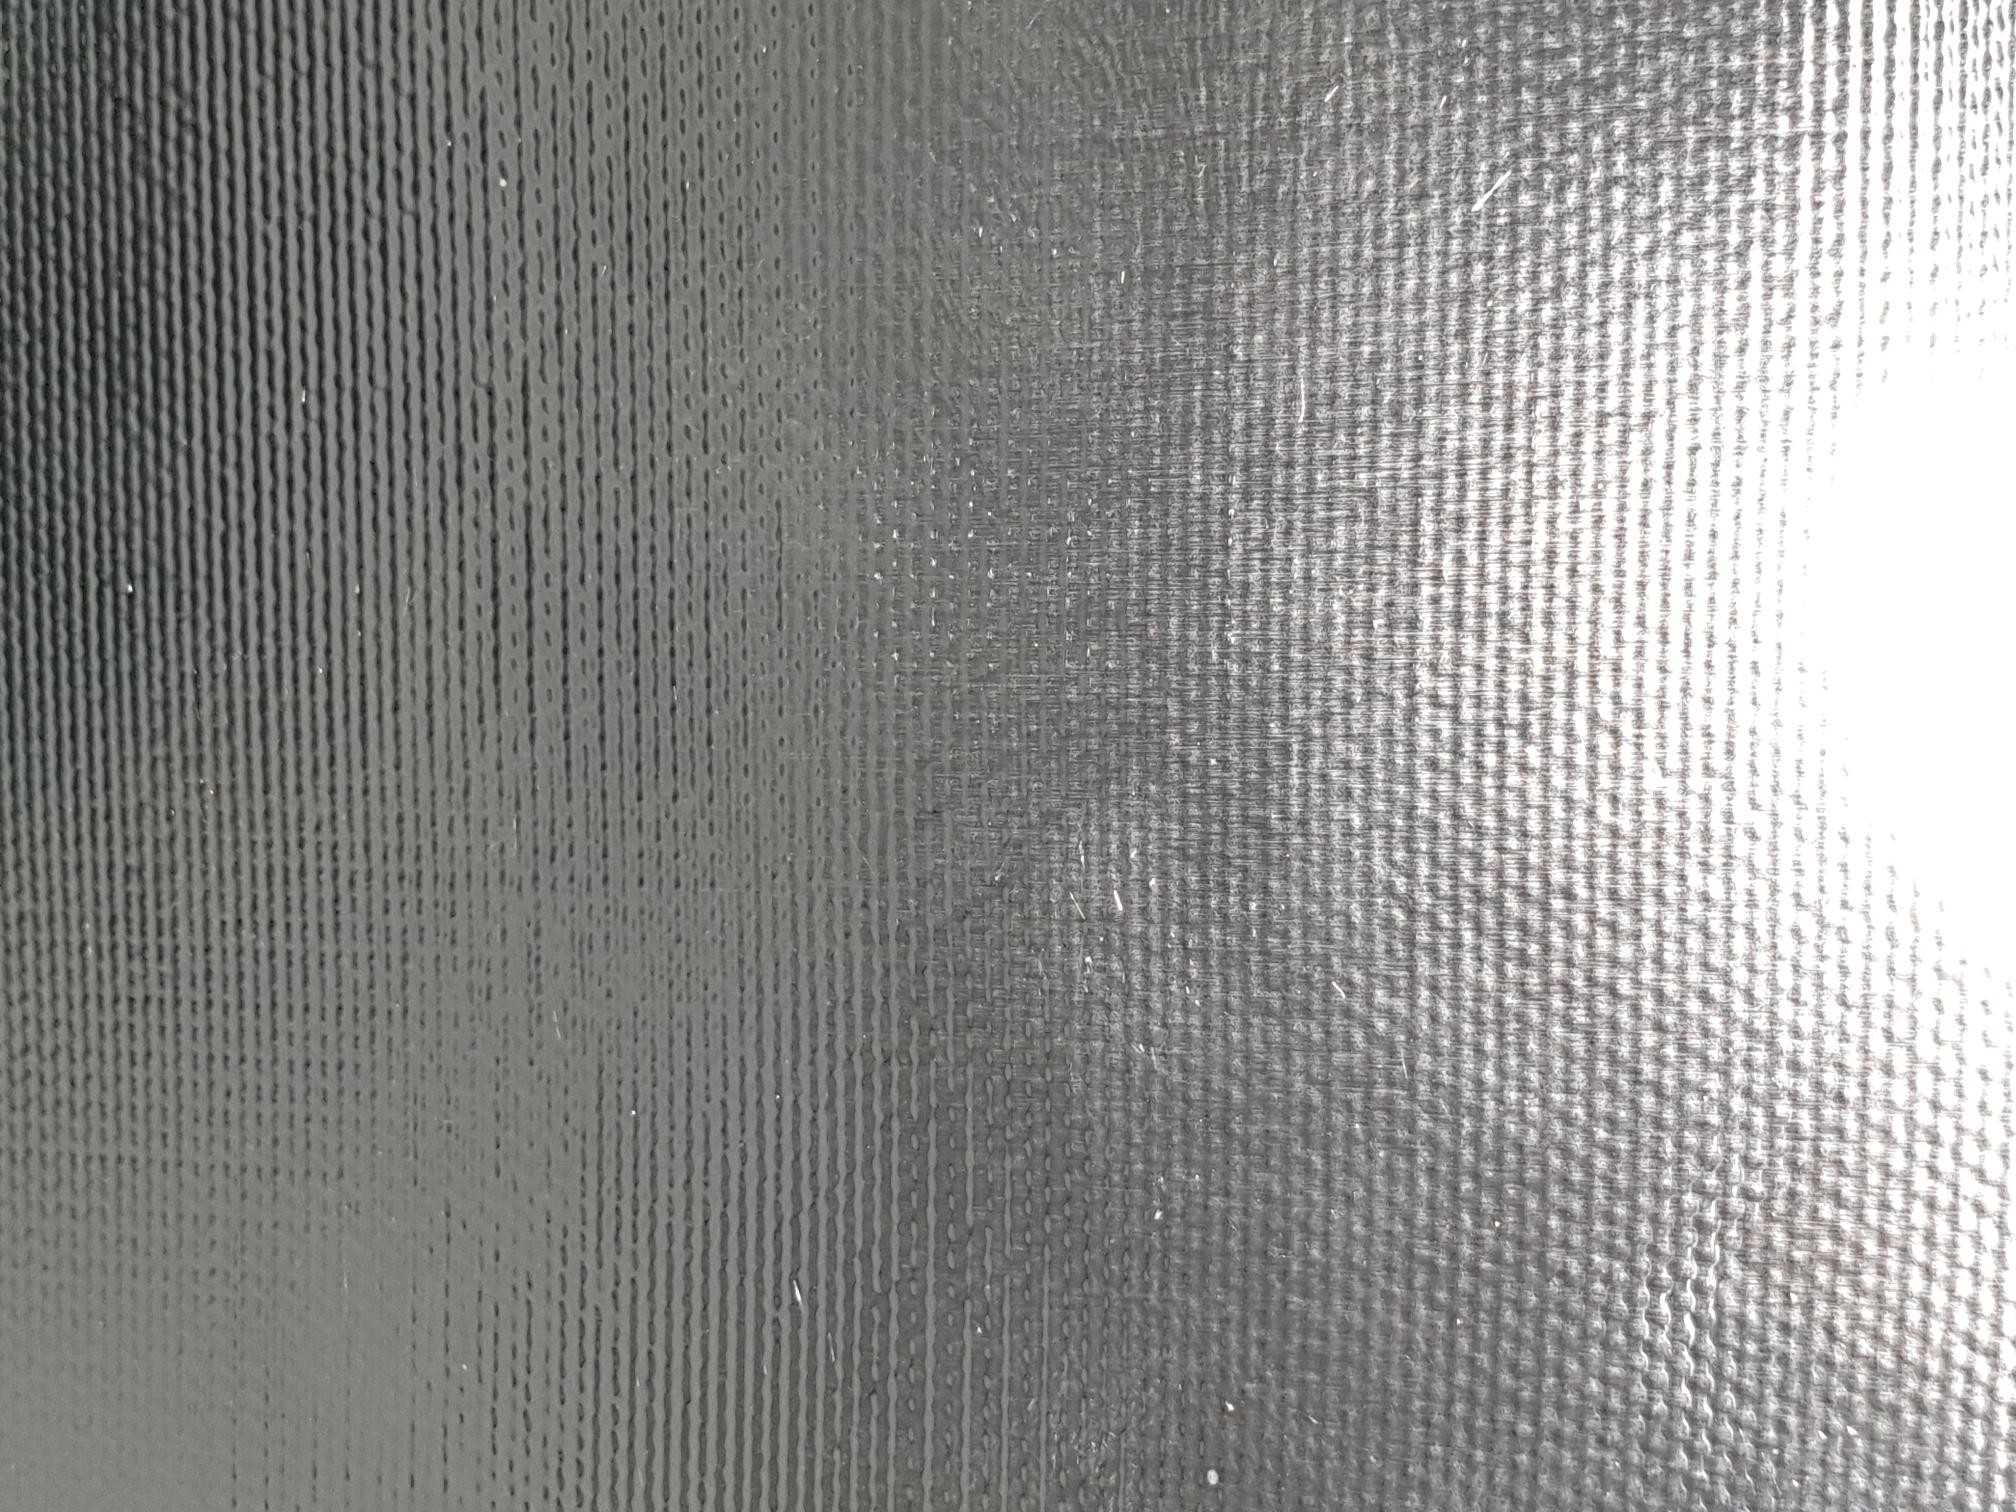 ECP 7004 200GSM 18um Aluminised Glass Fabric